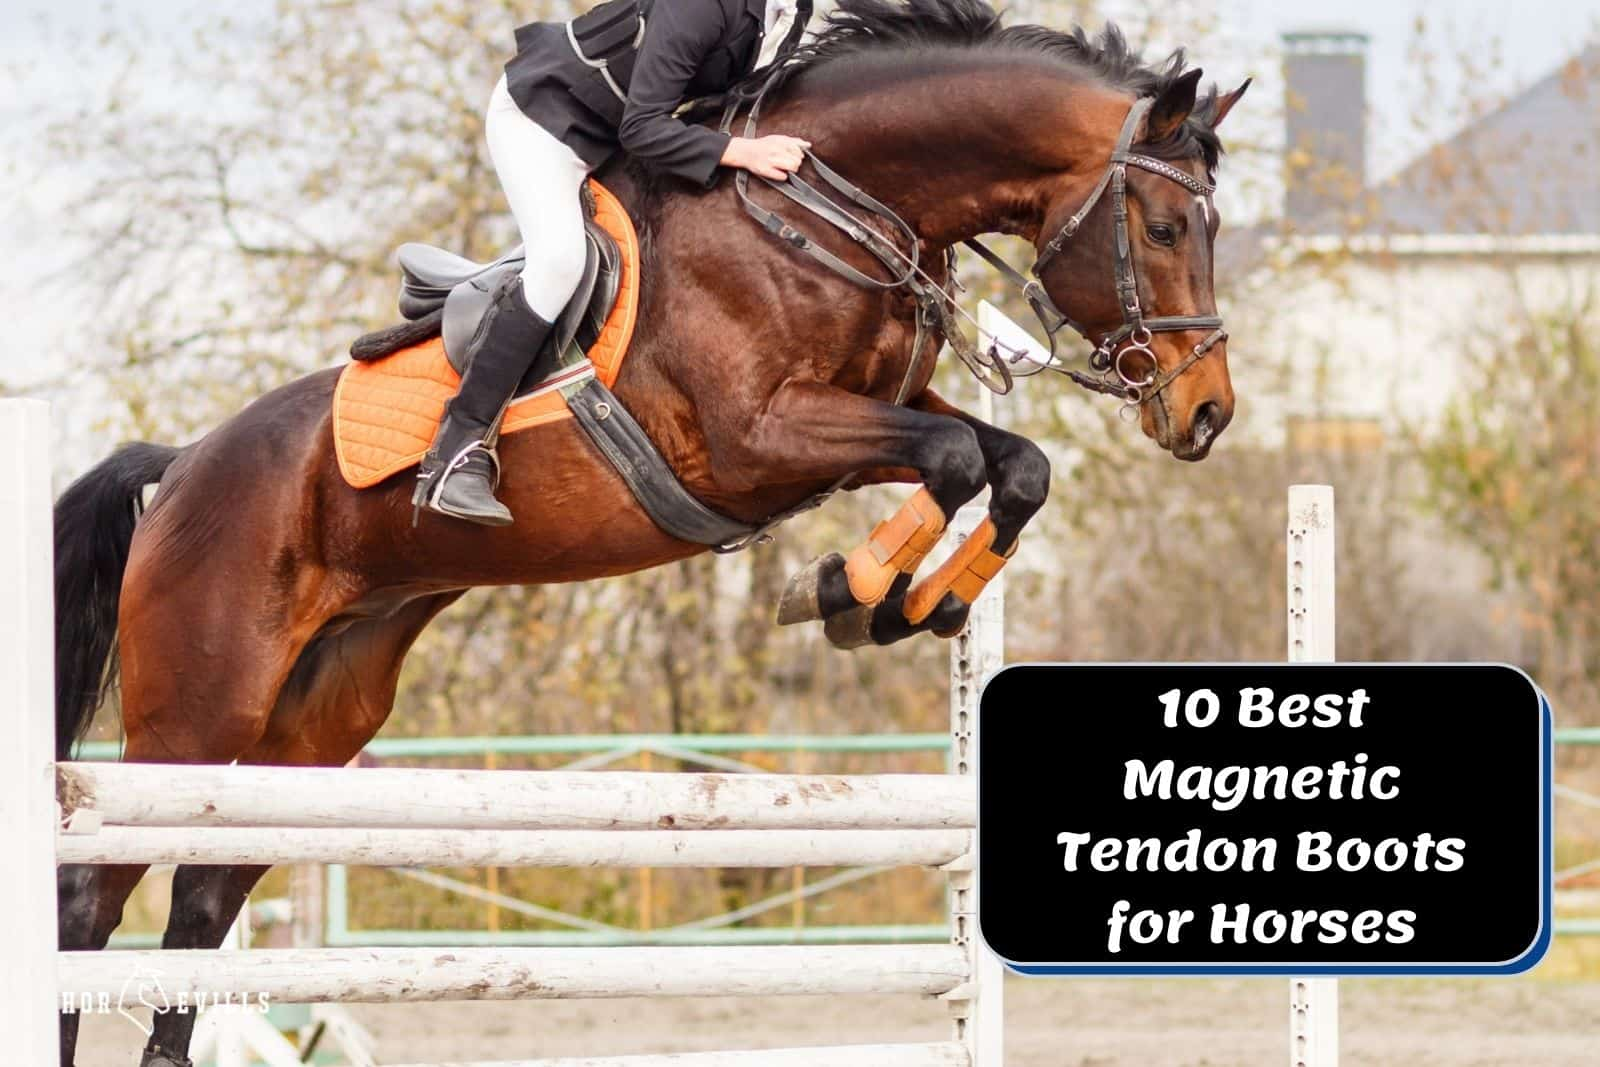 stallion in a showjumping competition using his magnetic tendon boots for horses